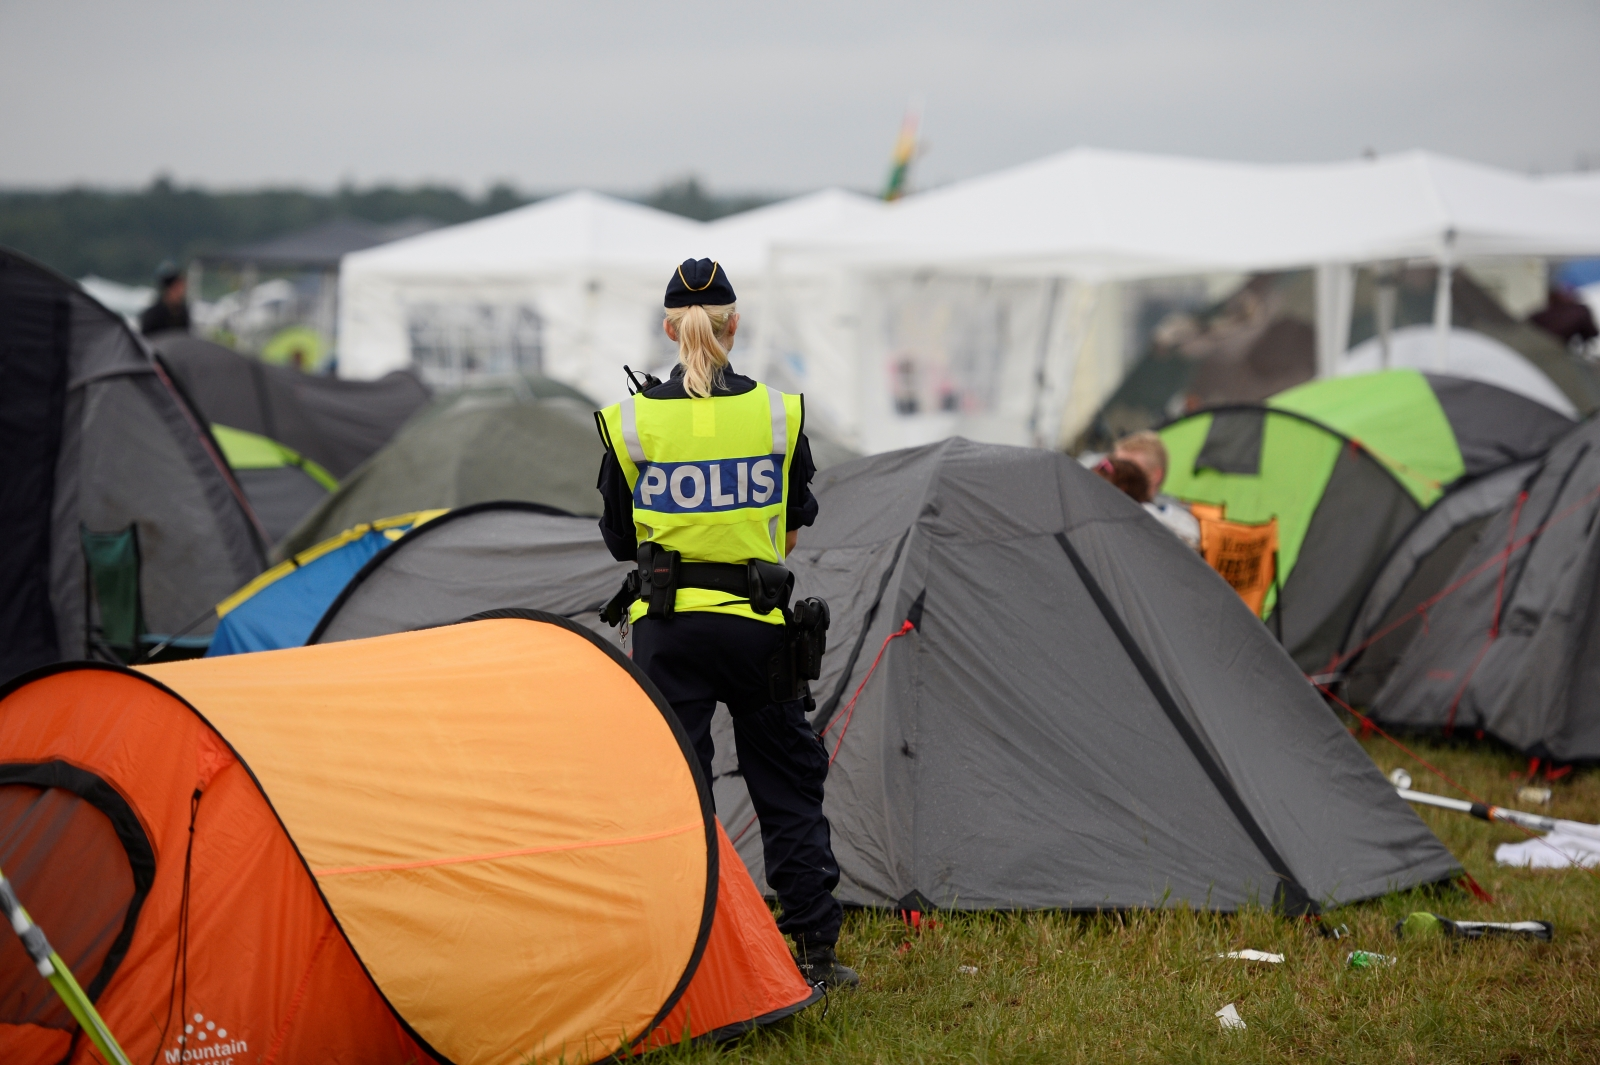 Sweden : the largest music festival cancelled after rape